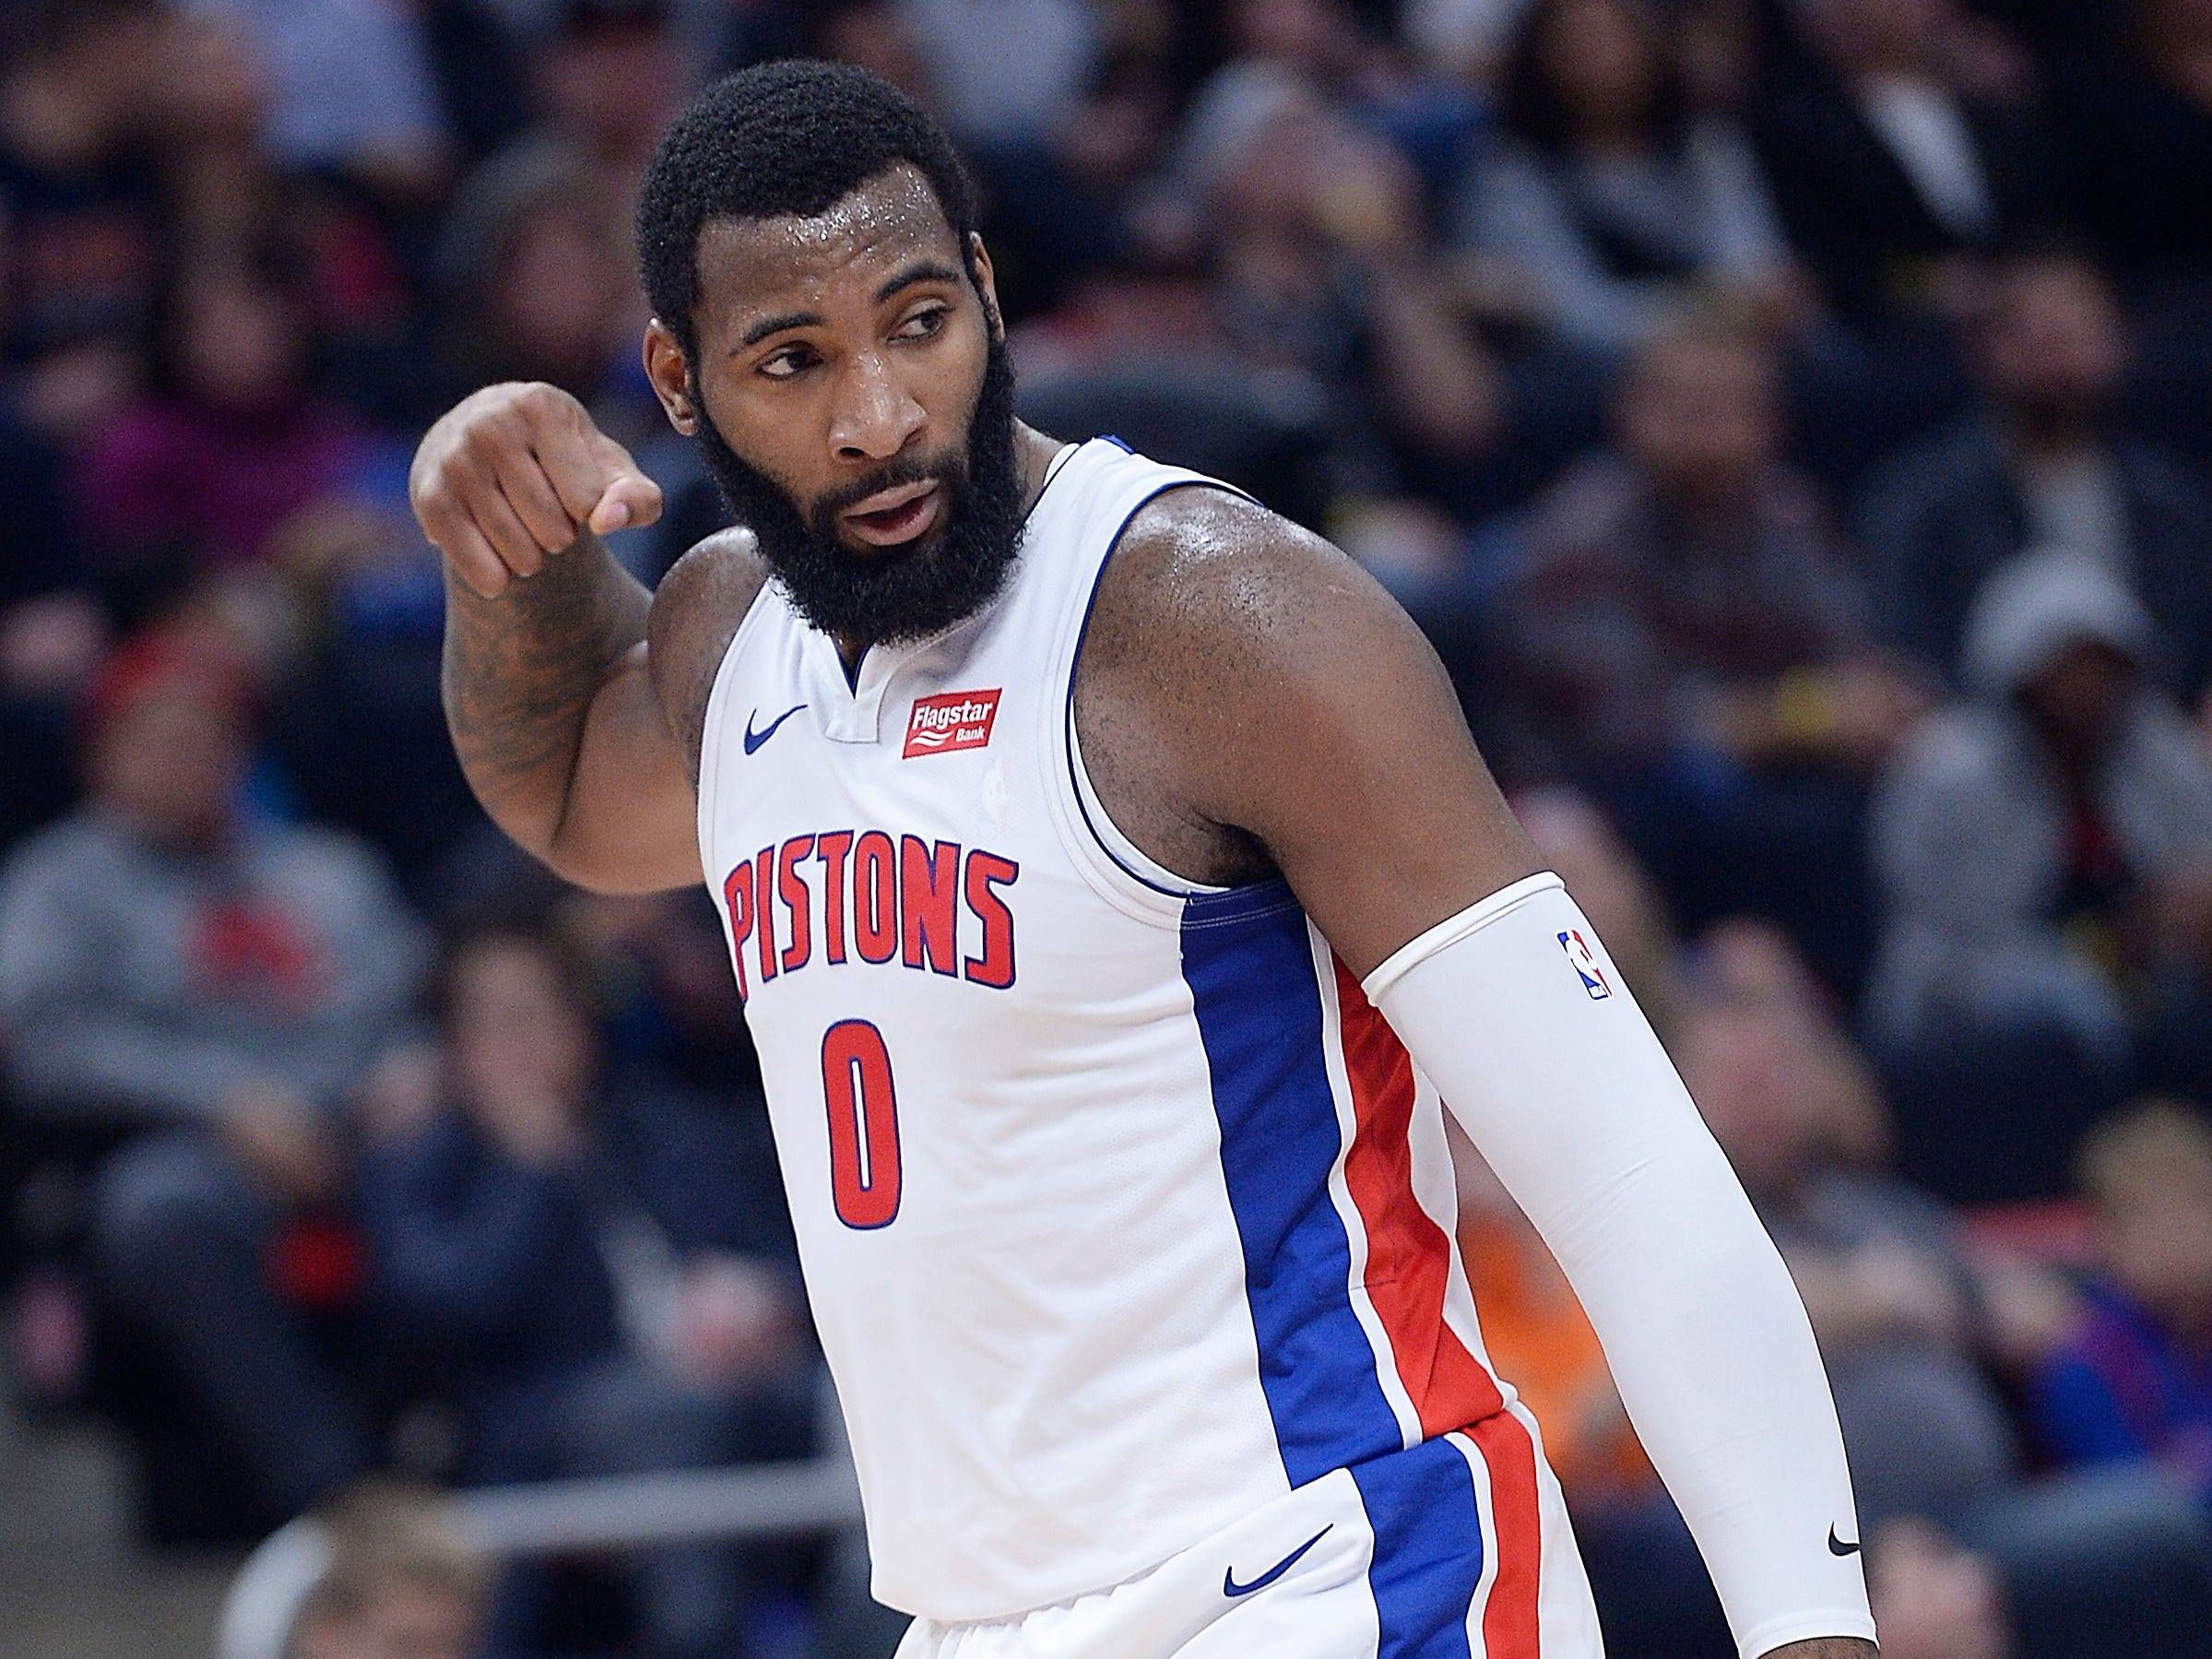 CENTERS -- Andre Drummond -- Stats: 16.8 pts., 15 rebs., 1.8 blks. in 41 games. Age: 25. It could be another All-Star selection for Drummond, if the Pistons are able to improve their record. His numbers are similar to his previous two selections, and he still leads the league in rebounding, but his shot selection needs to improve. Grade: B